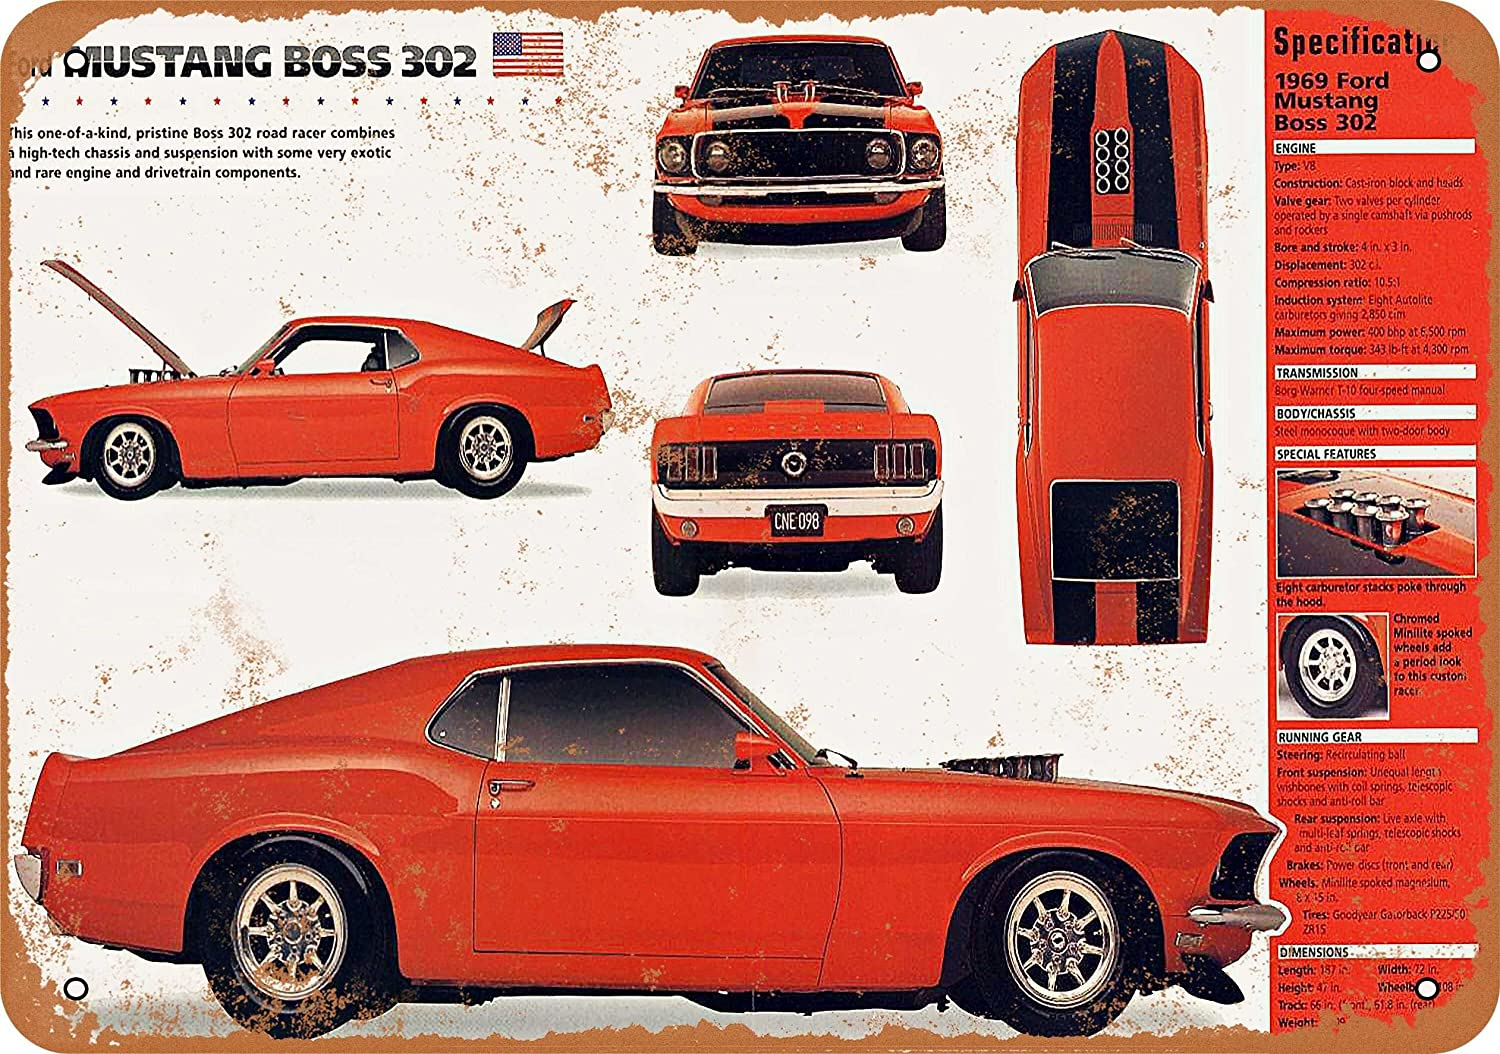 Wall Color 7 X 10 Metal Sign 1969 Ford Mustang Boss 302 Vintage Look Reproduction Home Kitchen